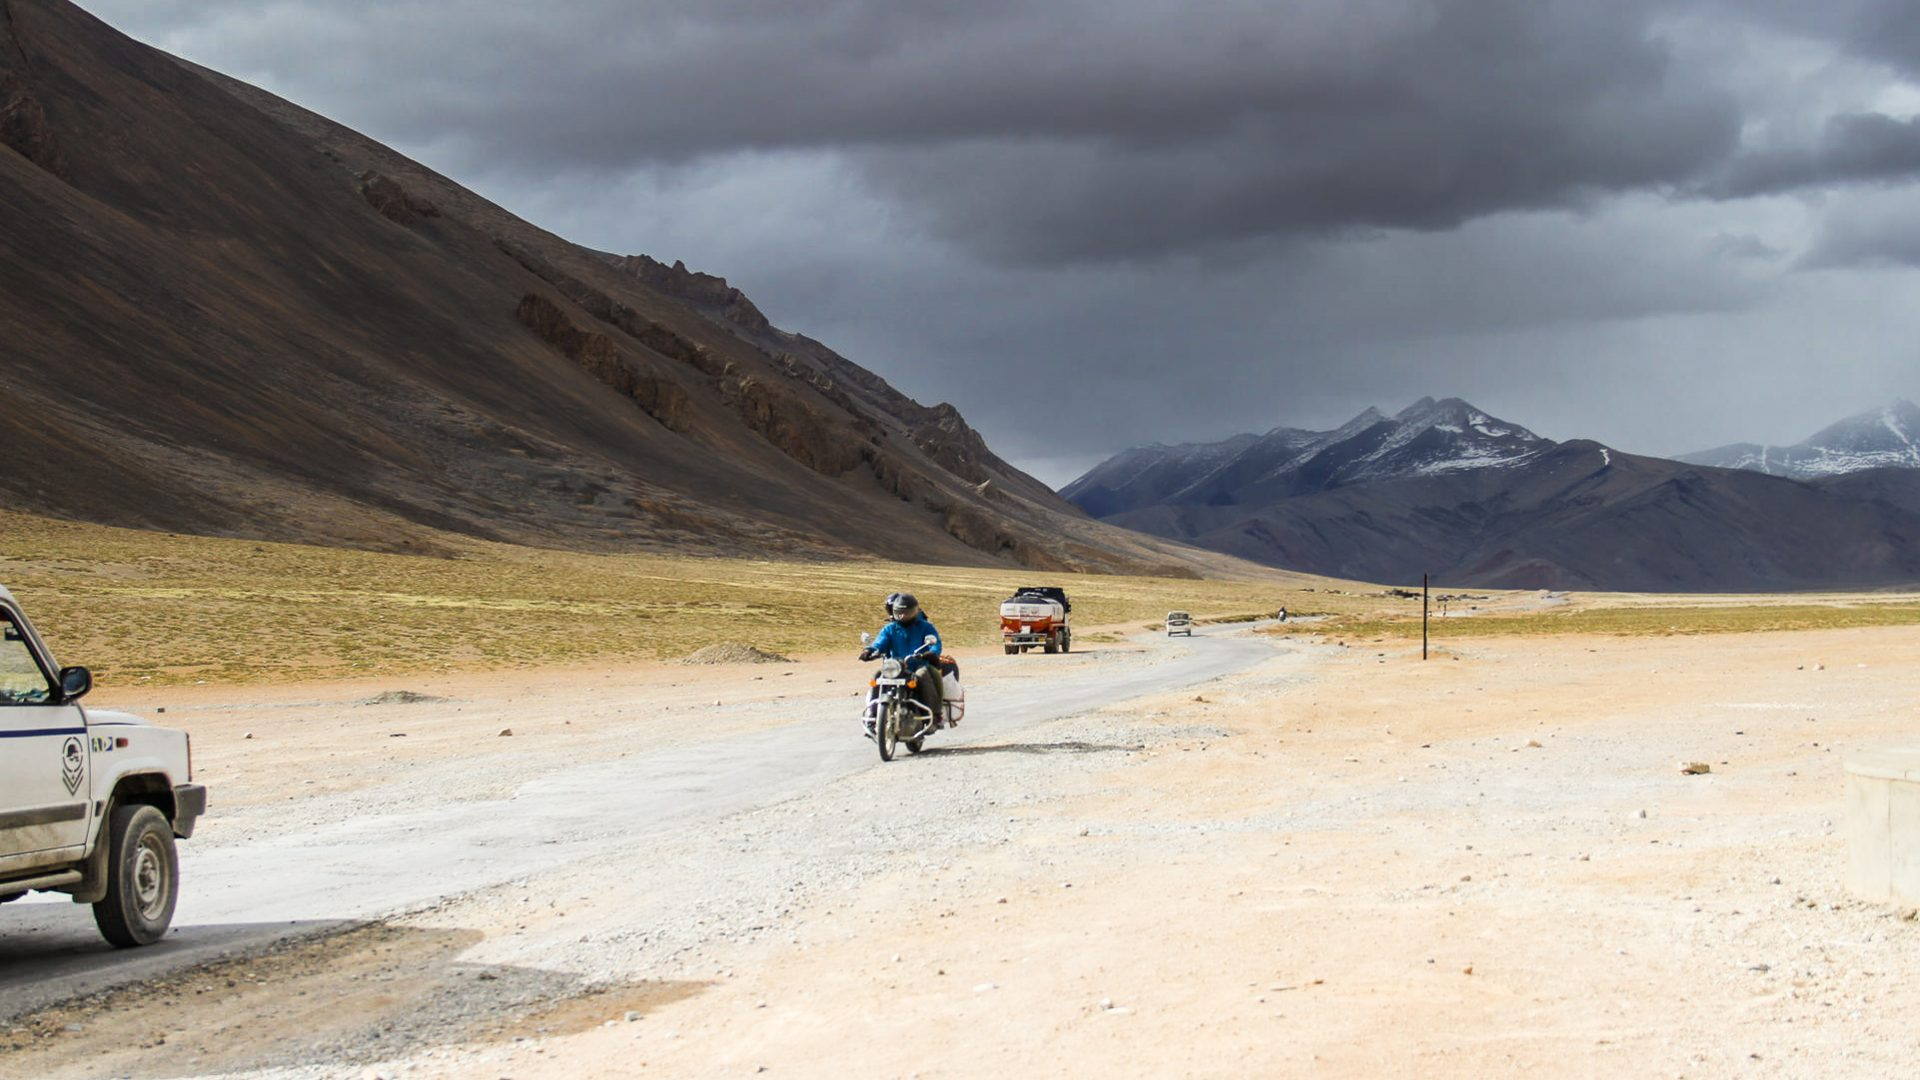 Trucks and motorcycles trail one another on the Manali to Leh Highway.